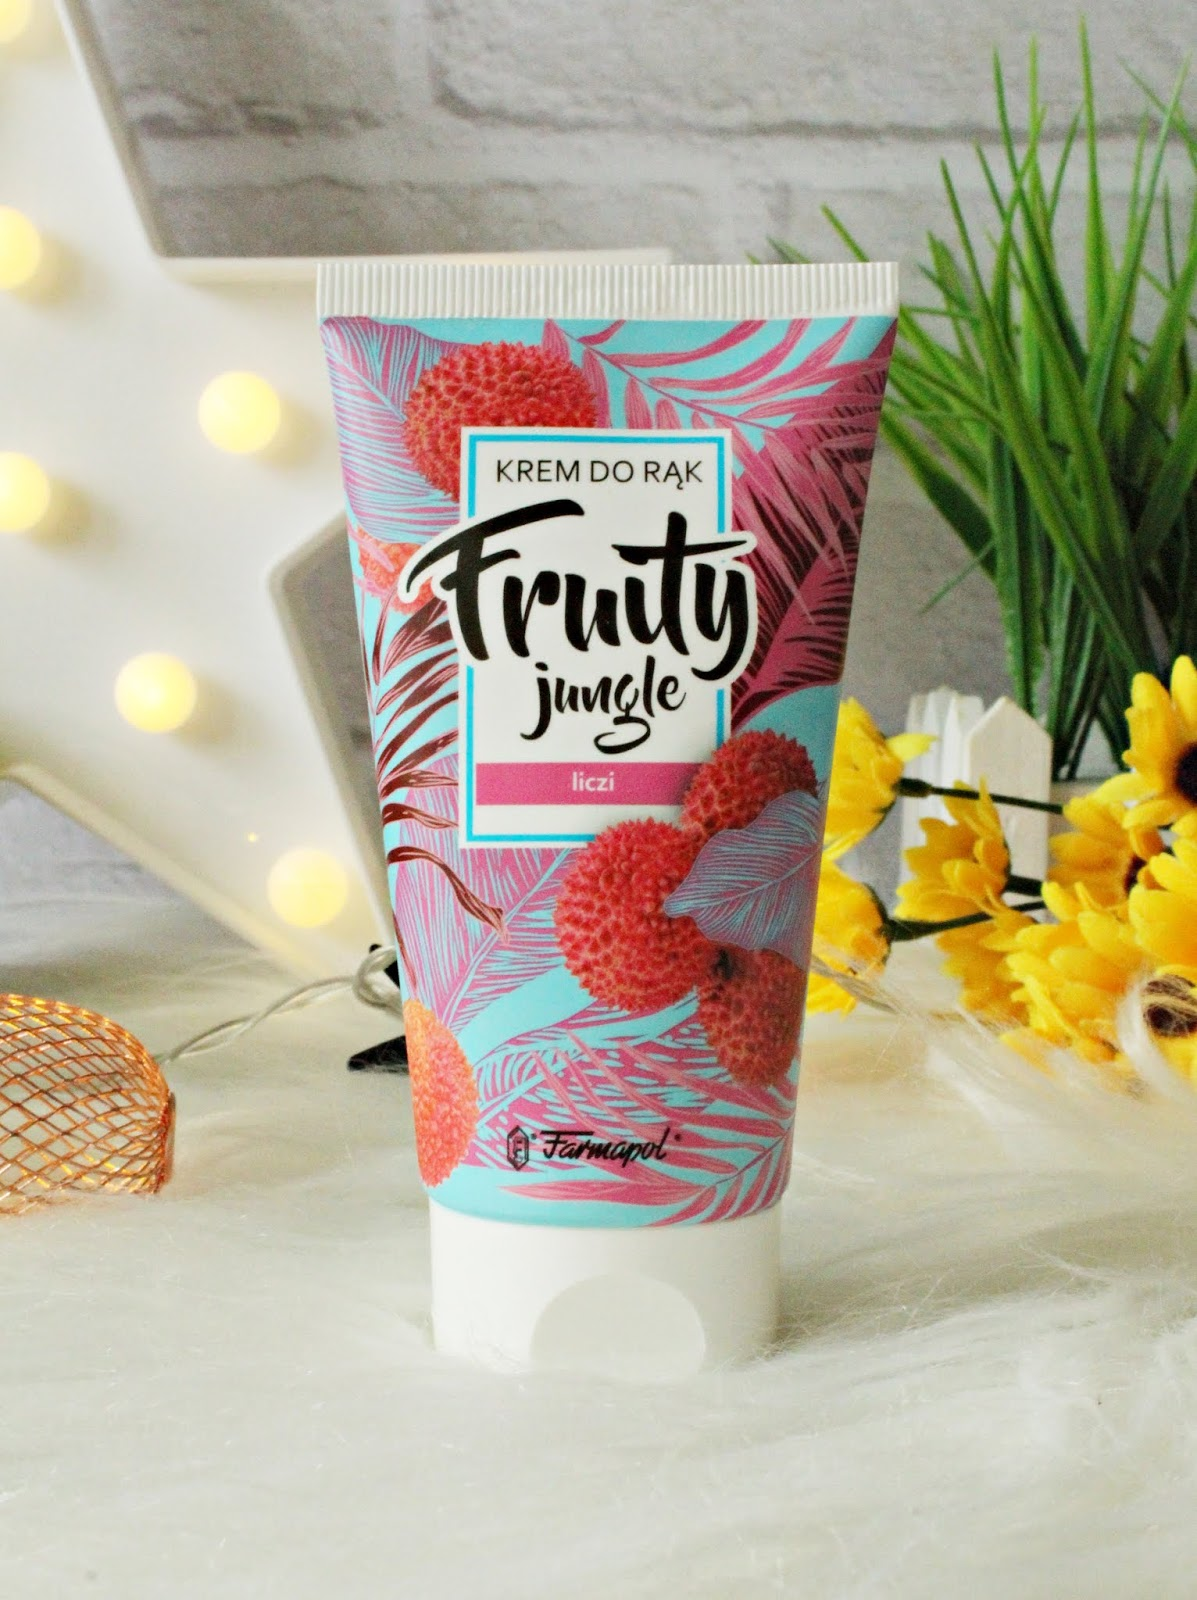 Fruity Jungle - kremy do rąk - acai i liczi